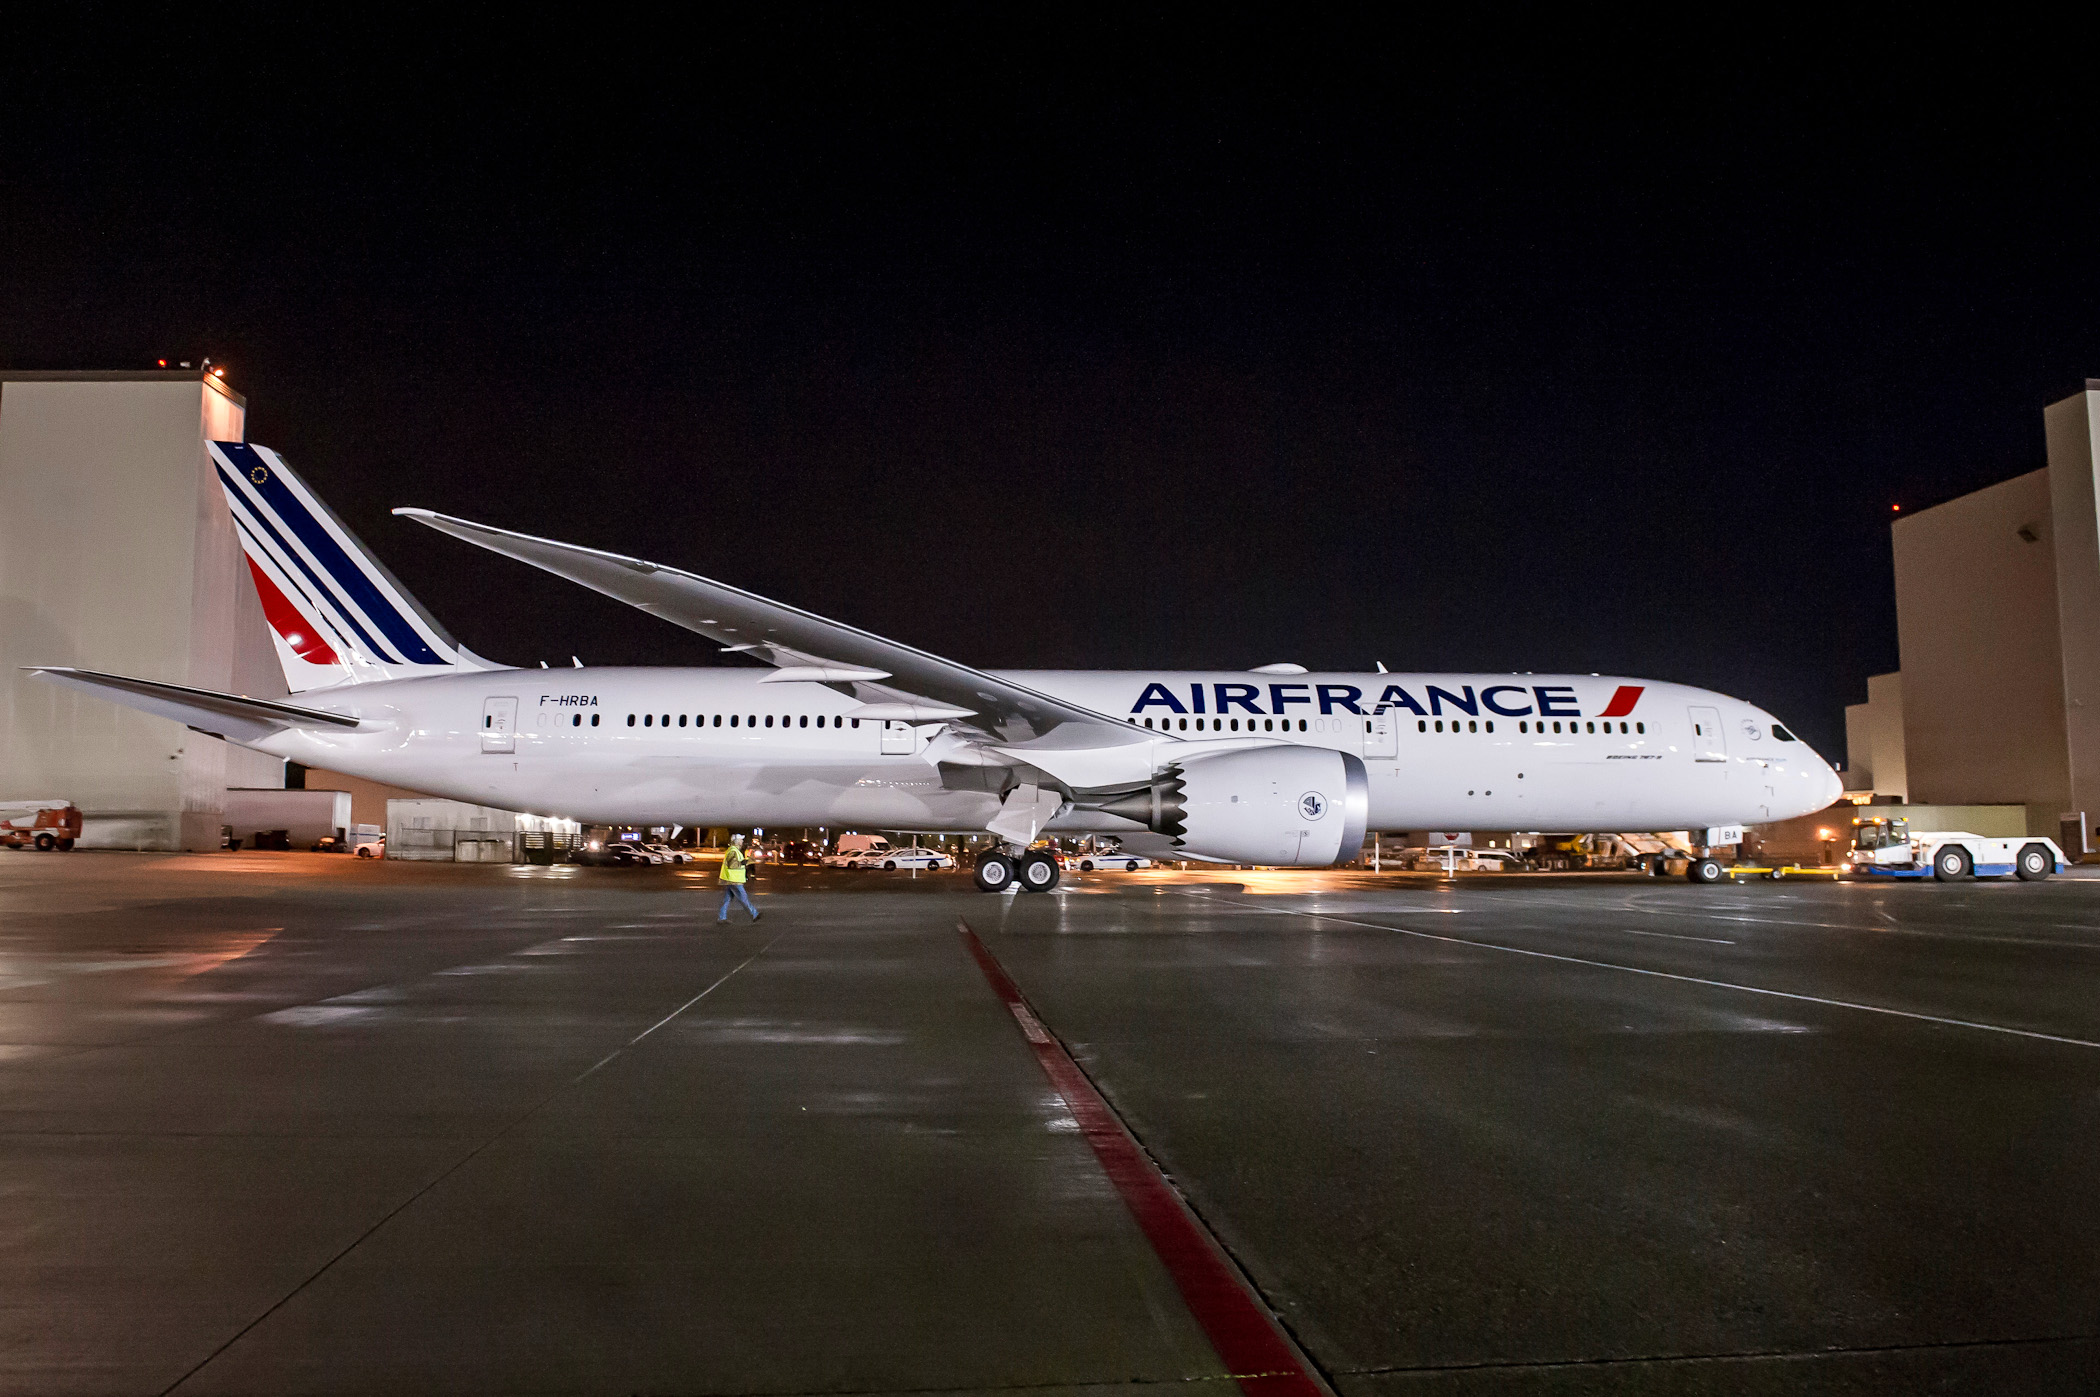 Air France anuncia 3 voos extras com Dreamliner no RJ